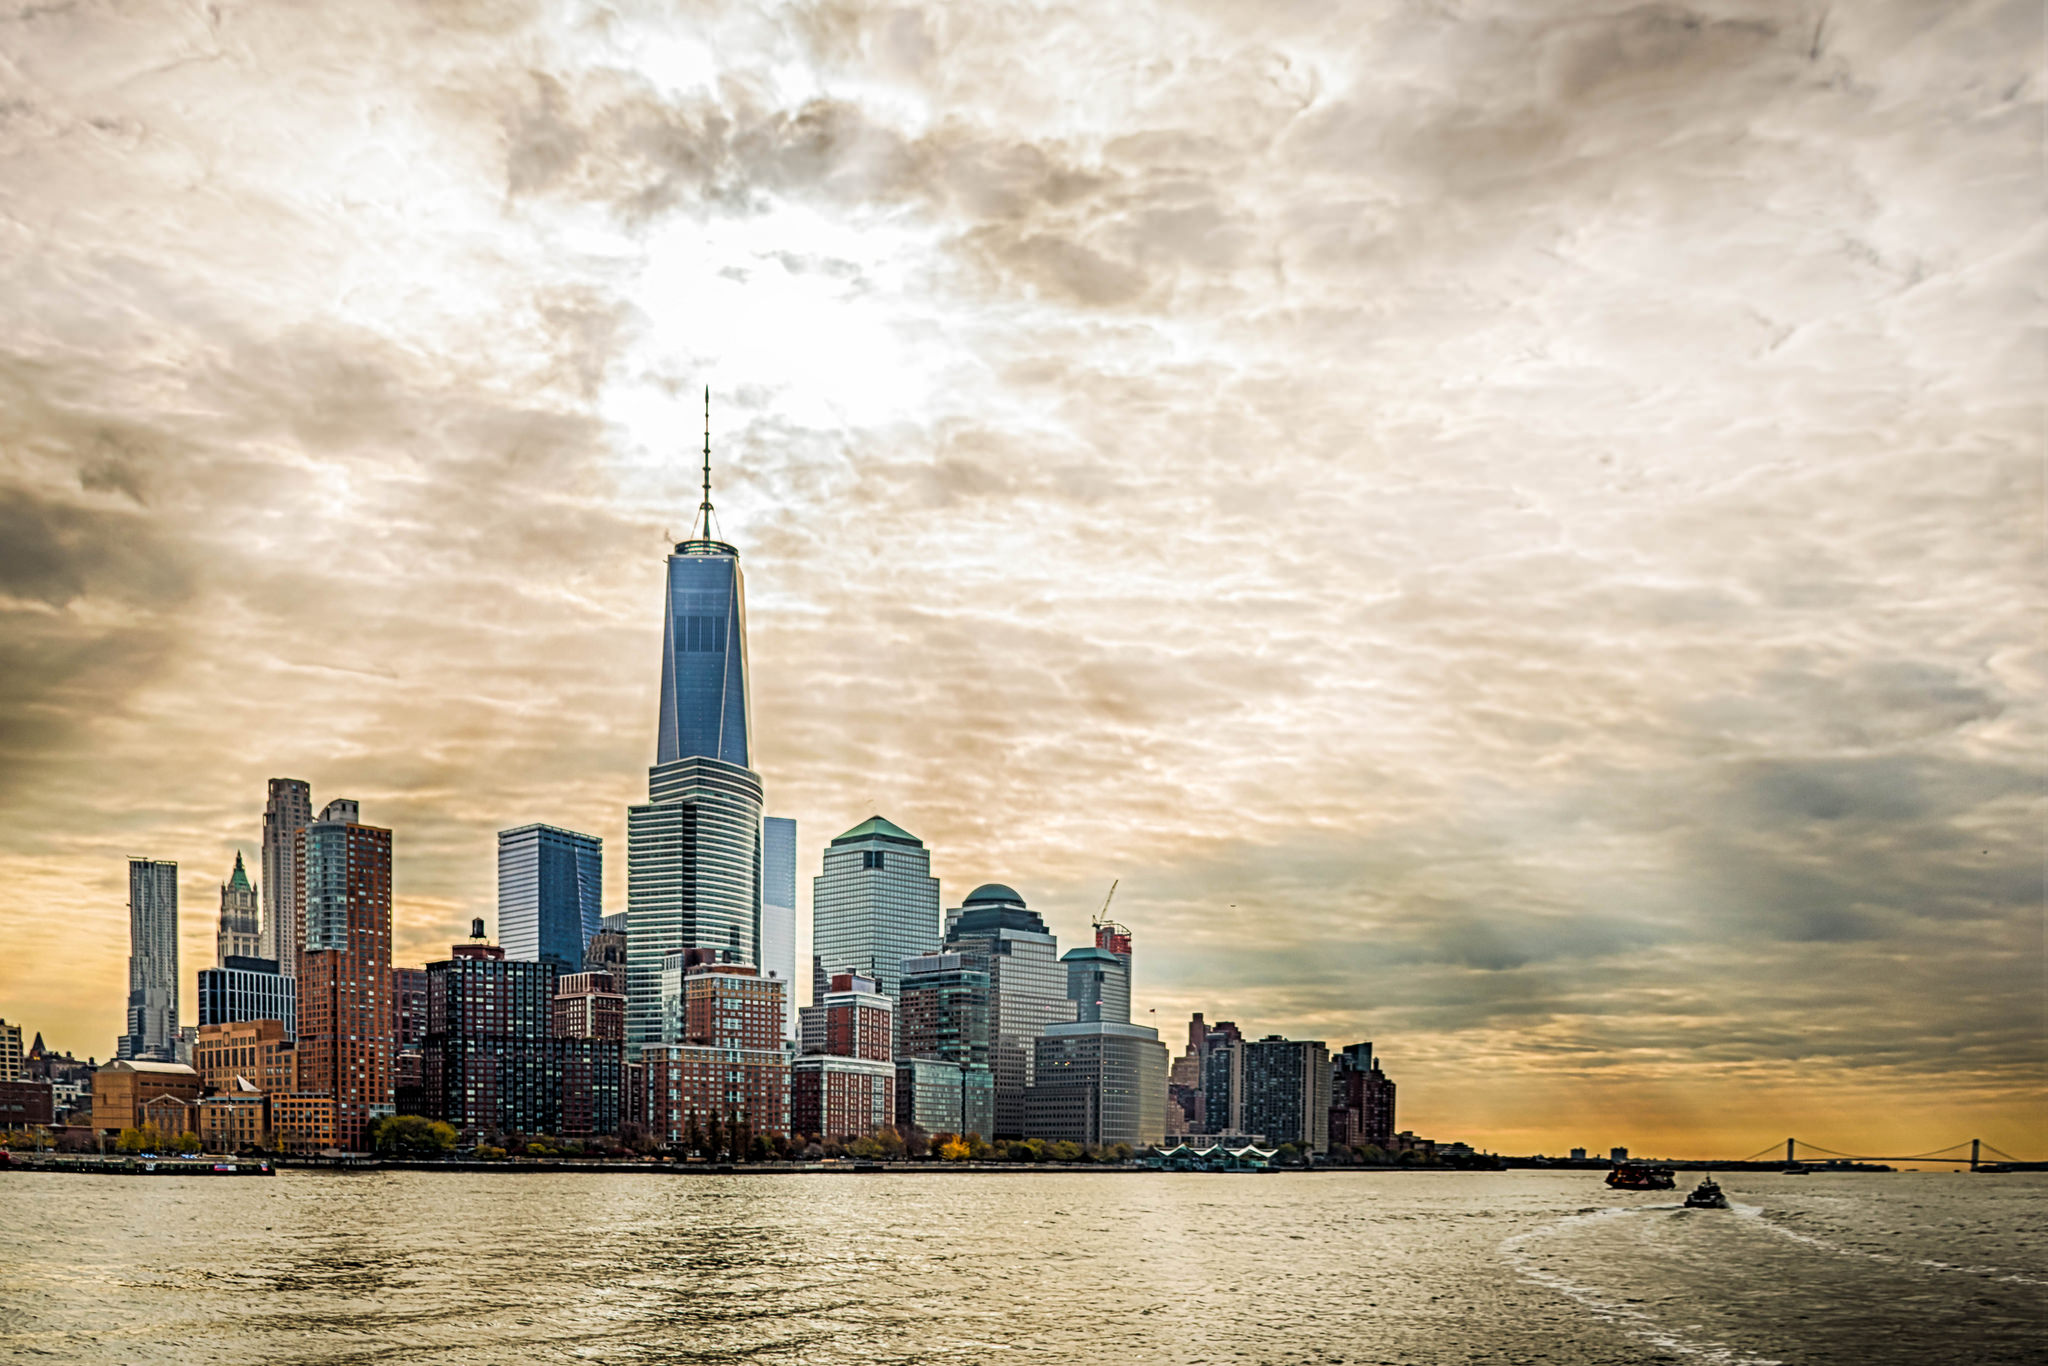 Lower Manhattan - Viewed From Hudson River | © Jody Claborn/Flickr